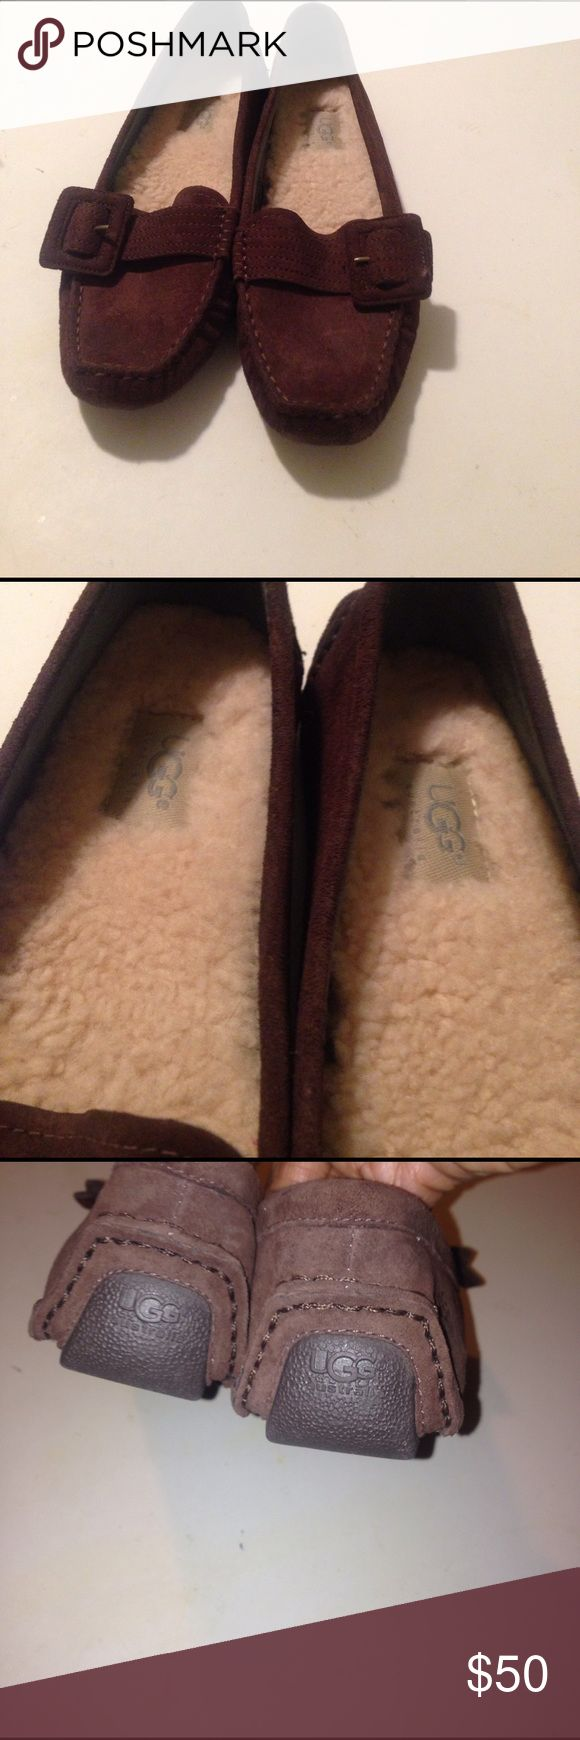 UGG SHOES Flat searing shoes. Buckle detail. Lined in lamb fur. Signature name on side of heels& back. Rubber soles. Minor wear on toe area very comfy & warm UGG Shoes Moccasins